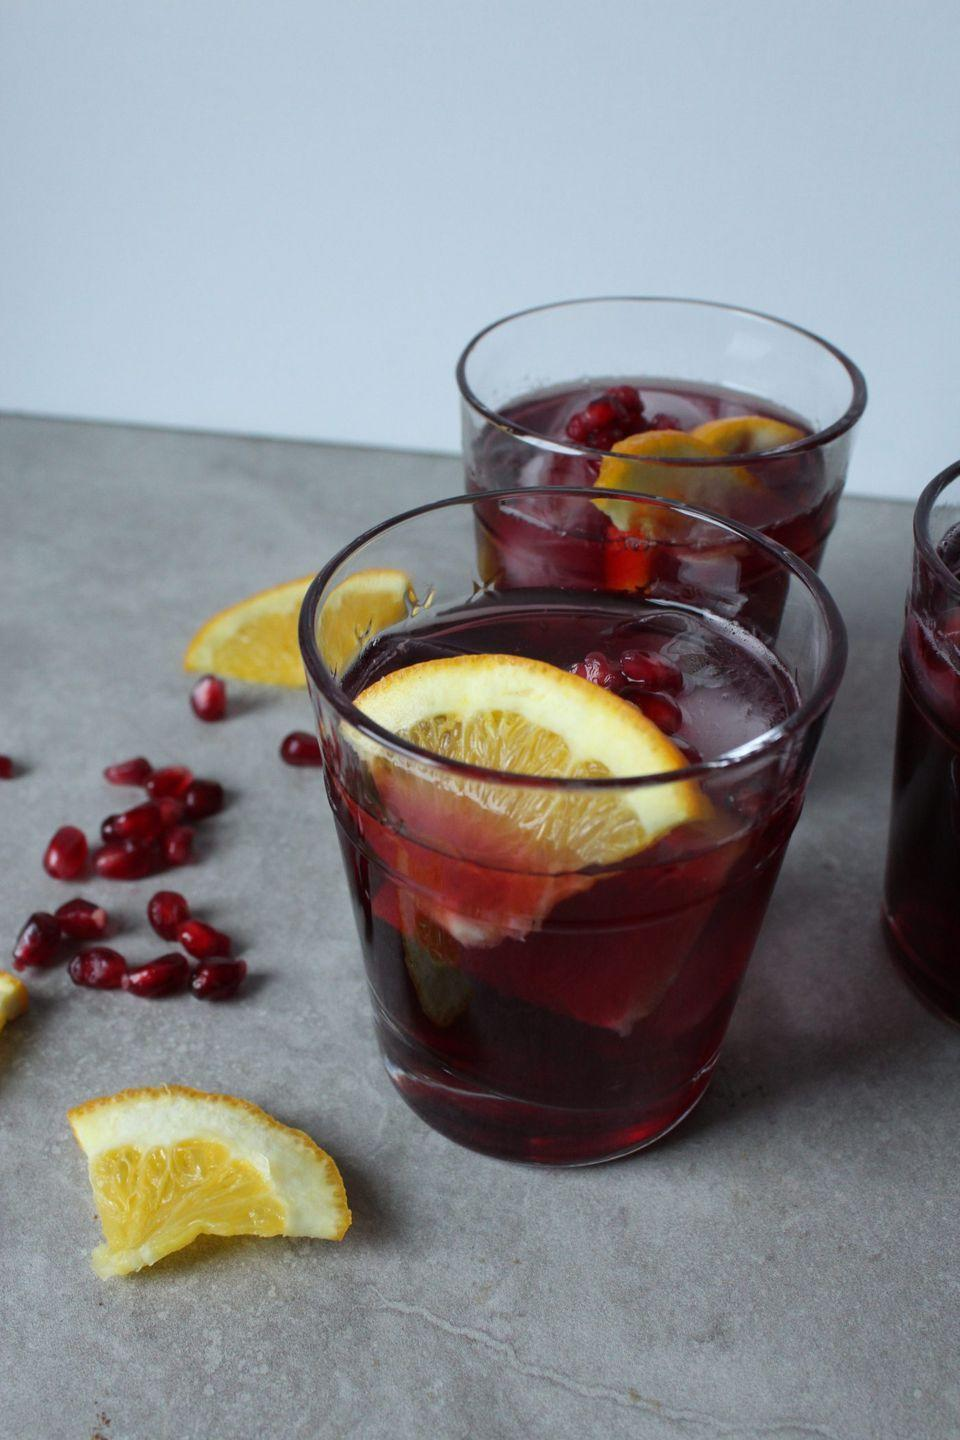 """<p>On the the lookout for a quick and classic punch for your Halloween gathering? Look no further than this simple red wine punch that will add an elegant touch to your bash.</p><p><strong>Get the recipe at <a href=""""http://eatdrinkfrolic.com/2019/01/easy-red-wine-punch.html"""" rel=""""nofollow noopener"""" target=""""_blank"""" data-ylk=""""slk:Eat Drink Frolic"""" class=""""link rapid-noclick-resp"""">Eat Drink Frolic</a>. </strong></p><p><a class=""""link rapid-noclick-resp"""" href=""""https://www.amazon.com/Ball-Mason-Jar-32-Clear-Mouth-Set/dp/B077LWMXFJ/ref=sr_1_8?dchild=1&keywords=mason+jars&qid=1624561124&sr=8-8&tag=syn-yahoo-20&ascsubtag=%5Bartid%7C2164.g.36792938%5Bsrc%7Cyahoo-us"""" rel=""""nofollow noopener"""" target=""""_blank"""" data-ylk=""""slk:SHOP MASON JARS"""">SHOP MASON JARS</a></p>"""